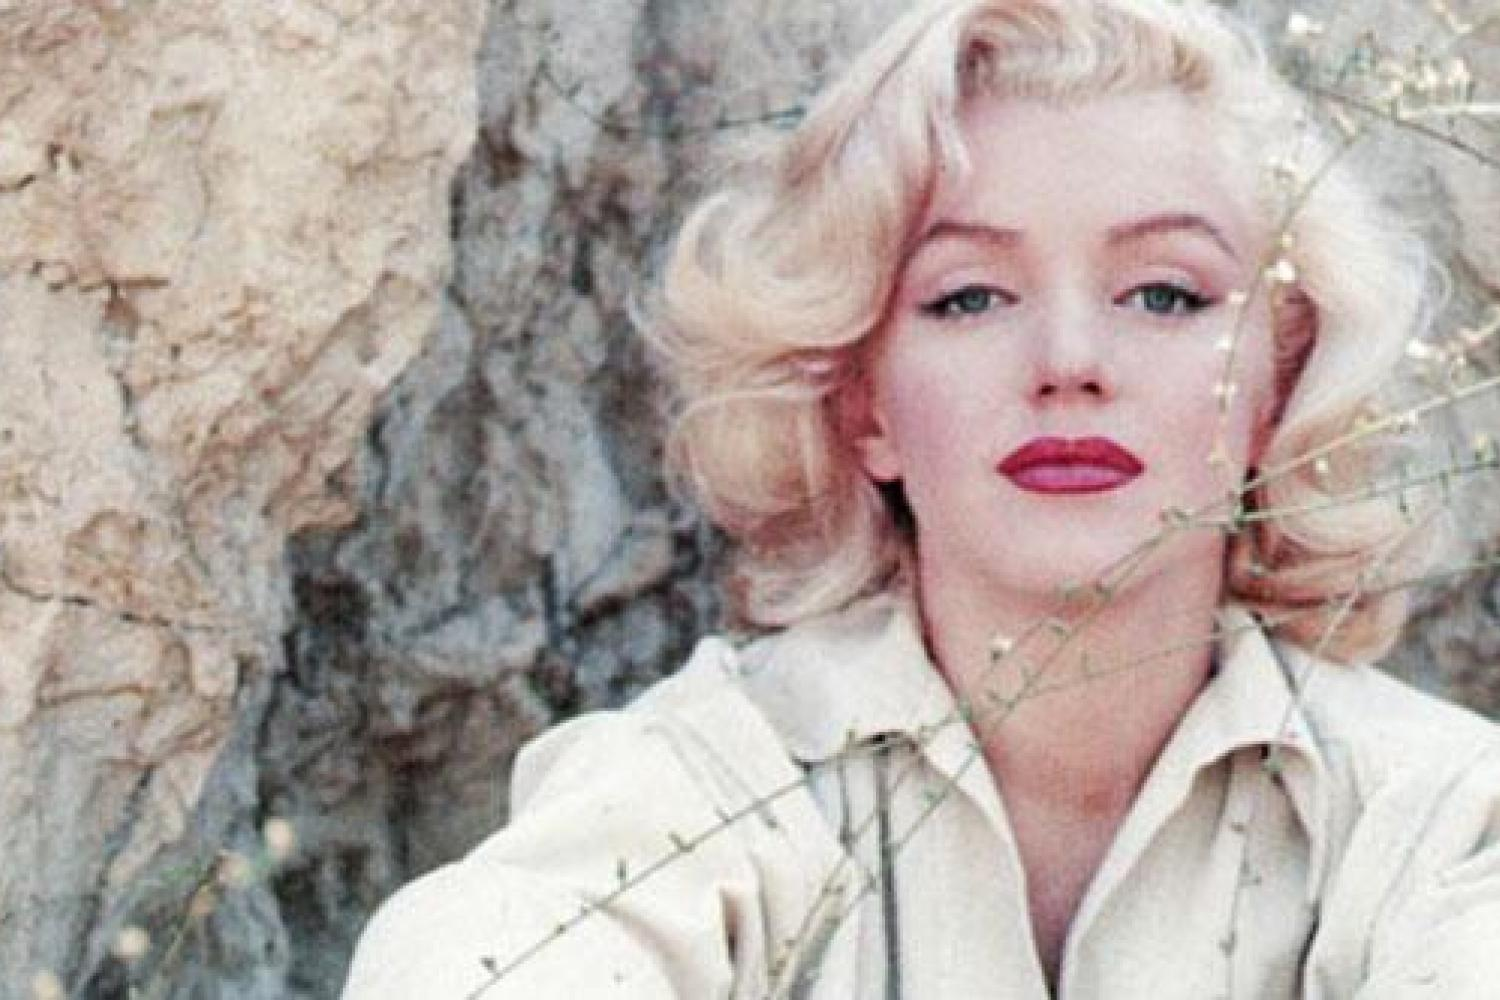 Playboy Centerfold Curse affected Many Stars Like Jayne Mansfield Marilyn Monroe And Many Playmates!